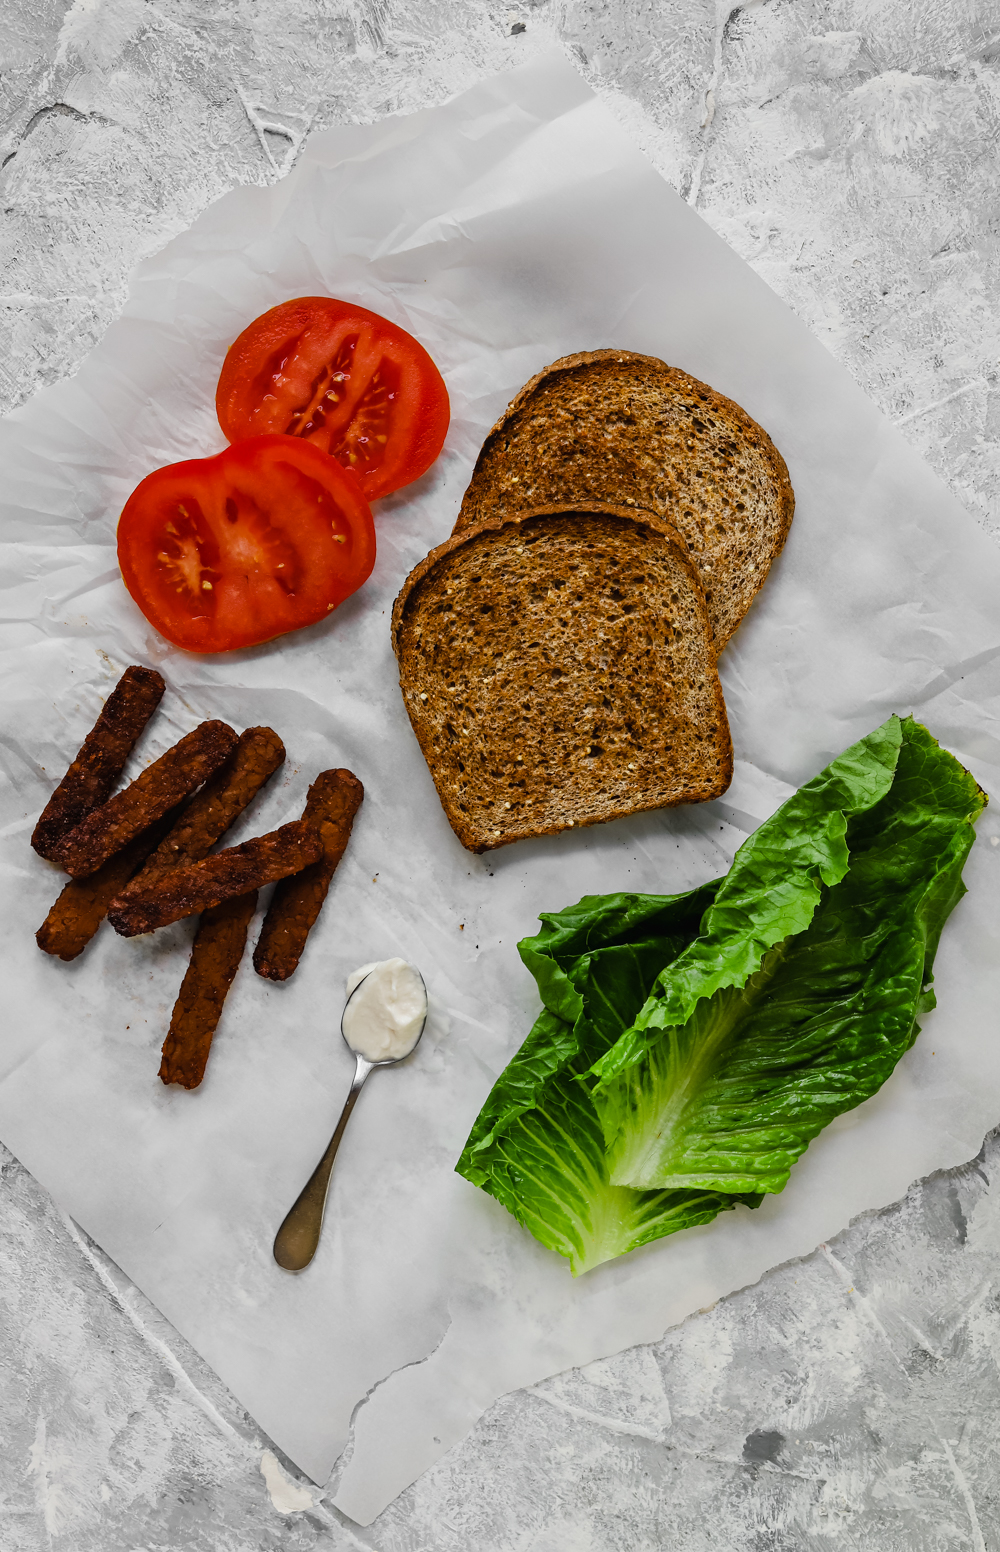 Ingredients for a vegan BLT with tempeh bacon on a piece of parchment paper.